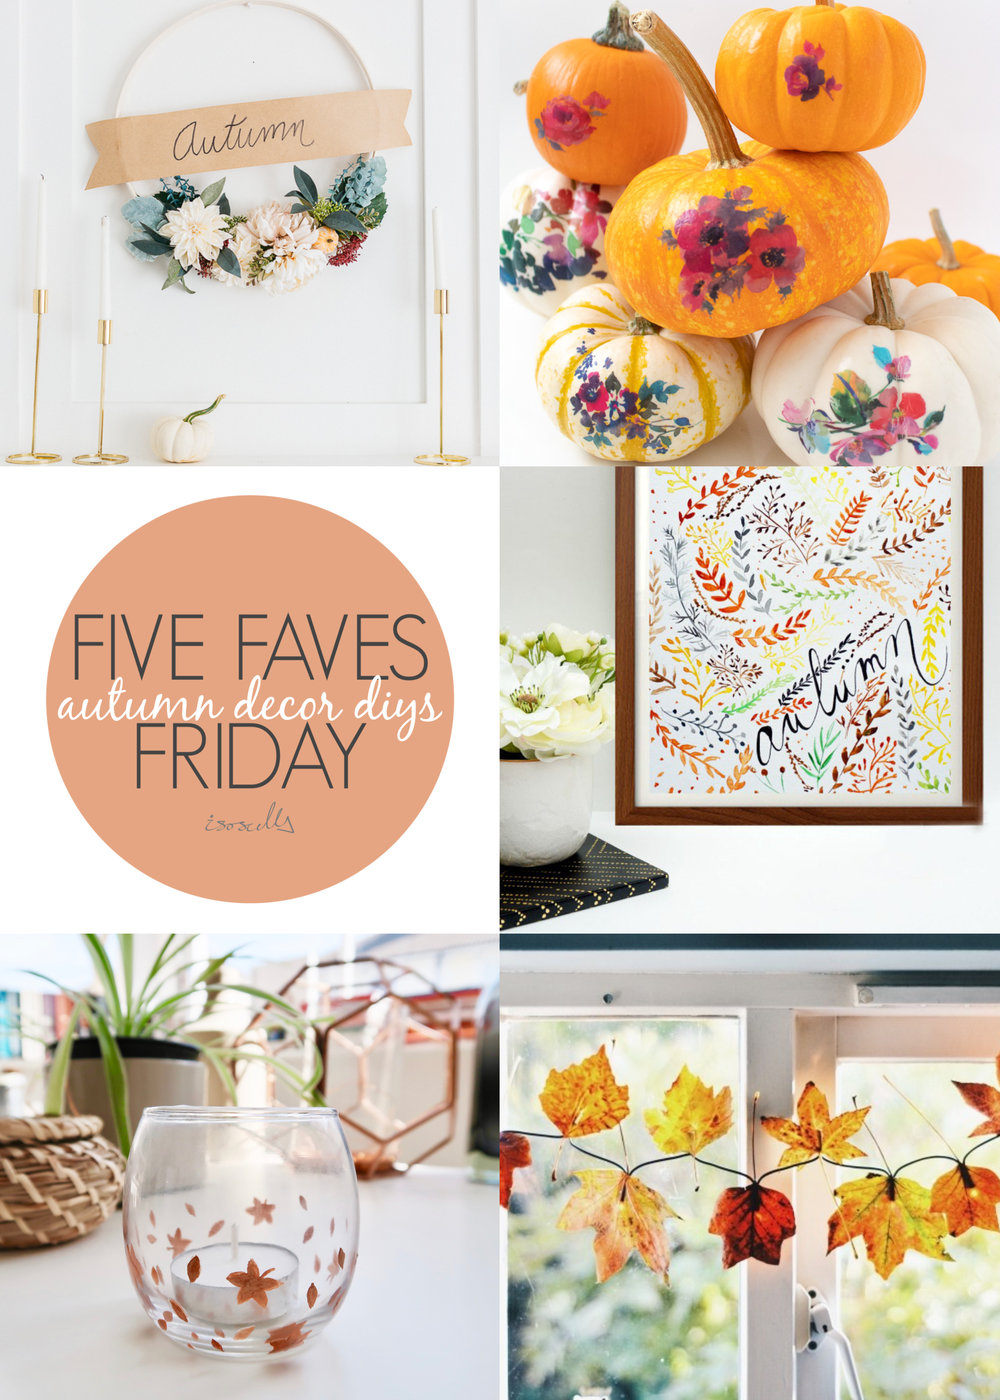 Five Faves Friday - Autumn Decor DIYs - Isoscella